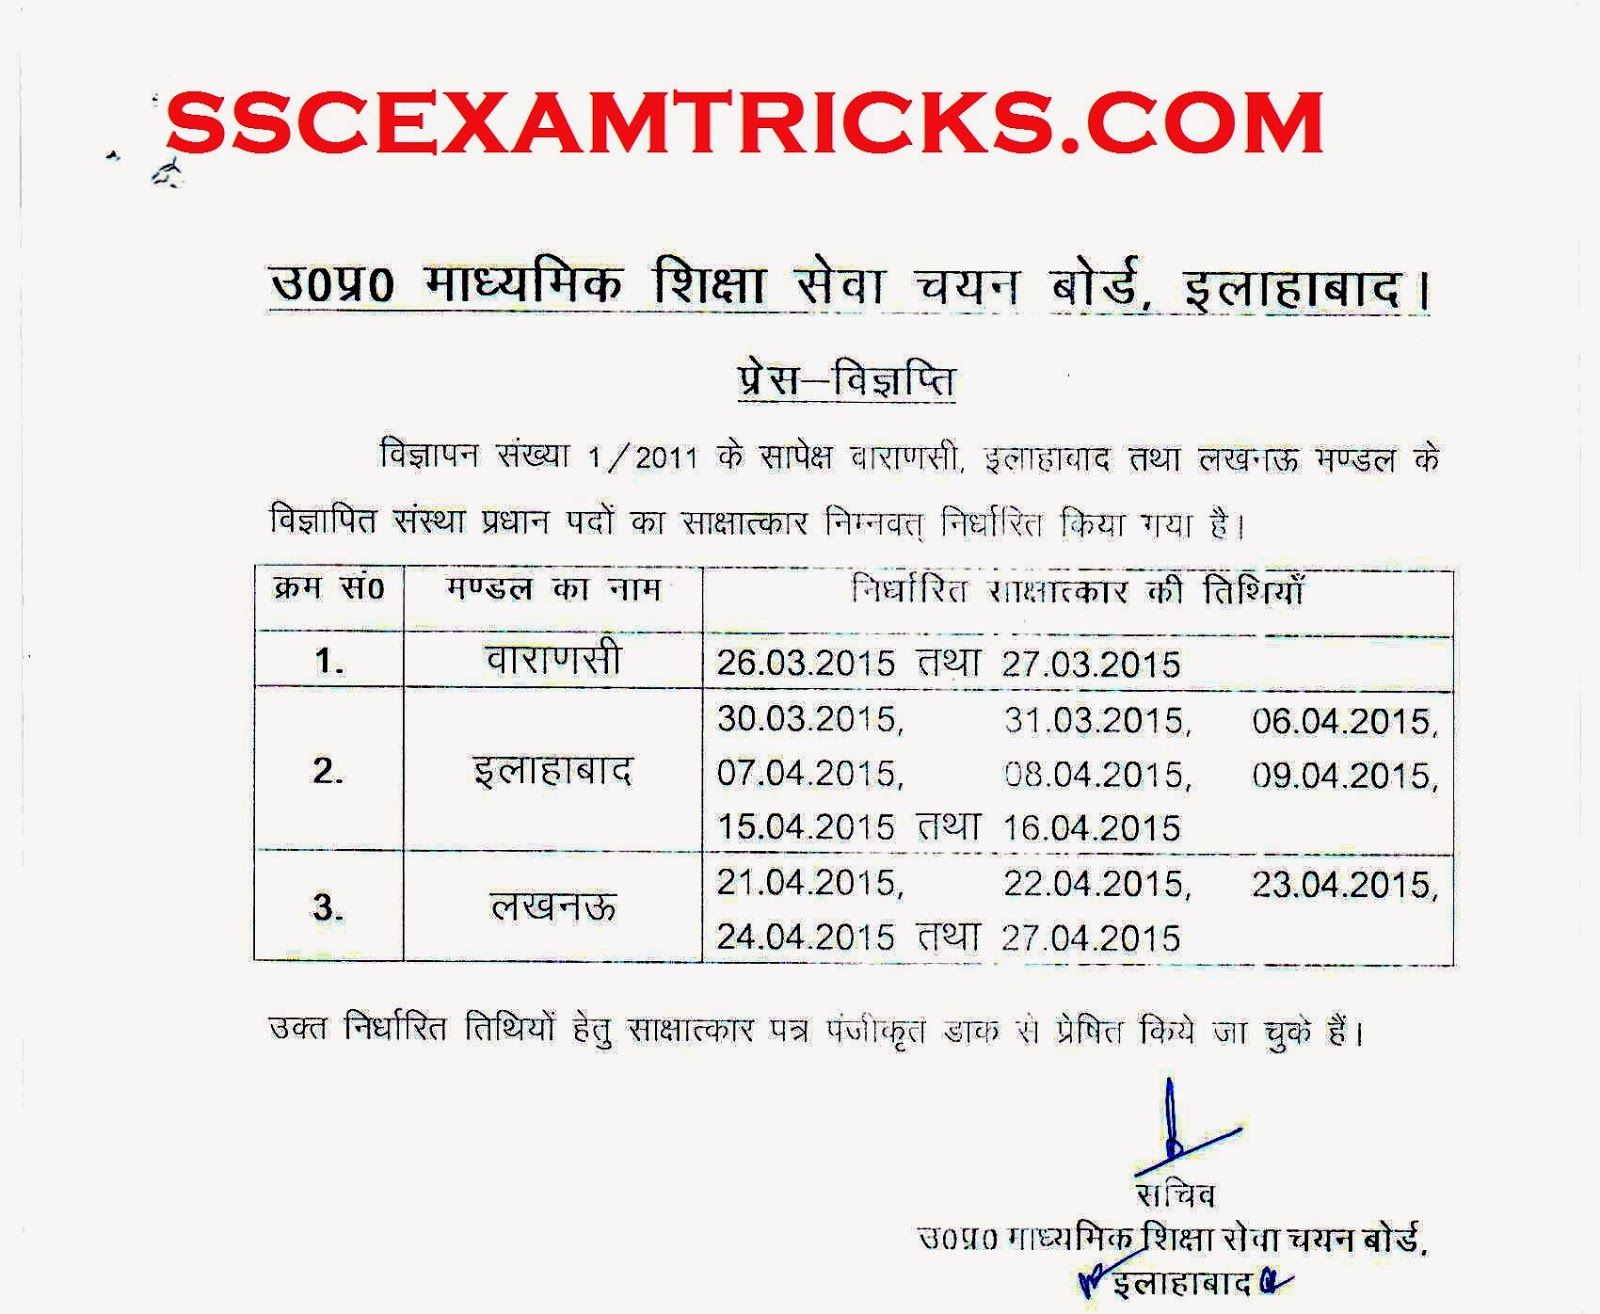 UPSESSB PRINCIPLE INTERVIEW SCHEDULE 2015